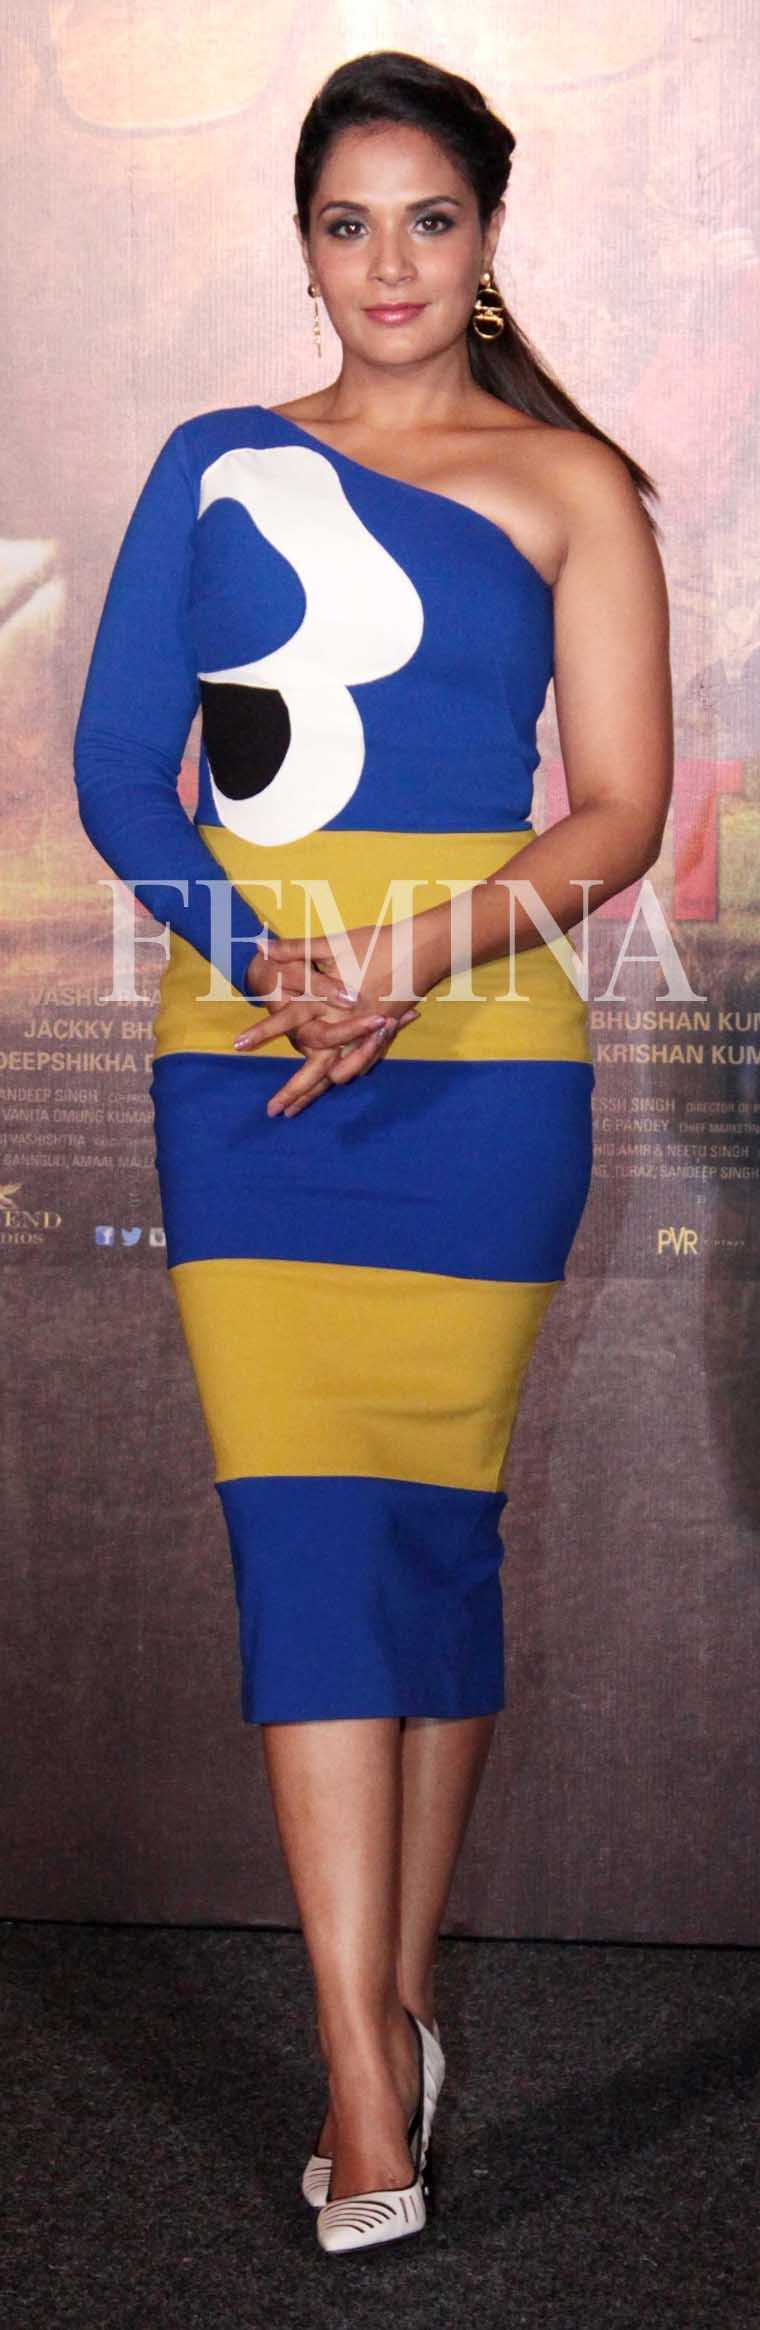 RICHA CHADHA: Stripes, bold florals, an electric blue sleeve—this striking Gauri and Nainika number ticks all the trend boxes. Richa wore the form-fitting printed dress with aplomb and paired it with white Gwen Stefani pumps.